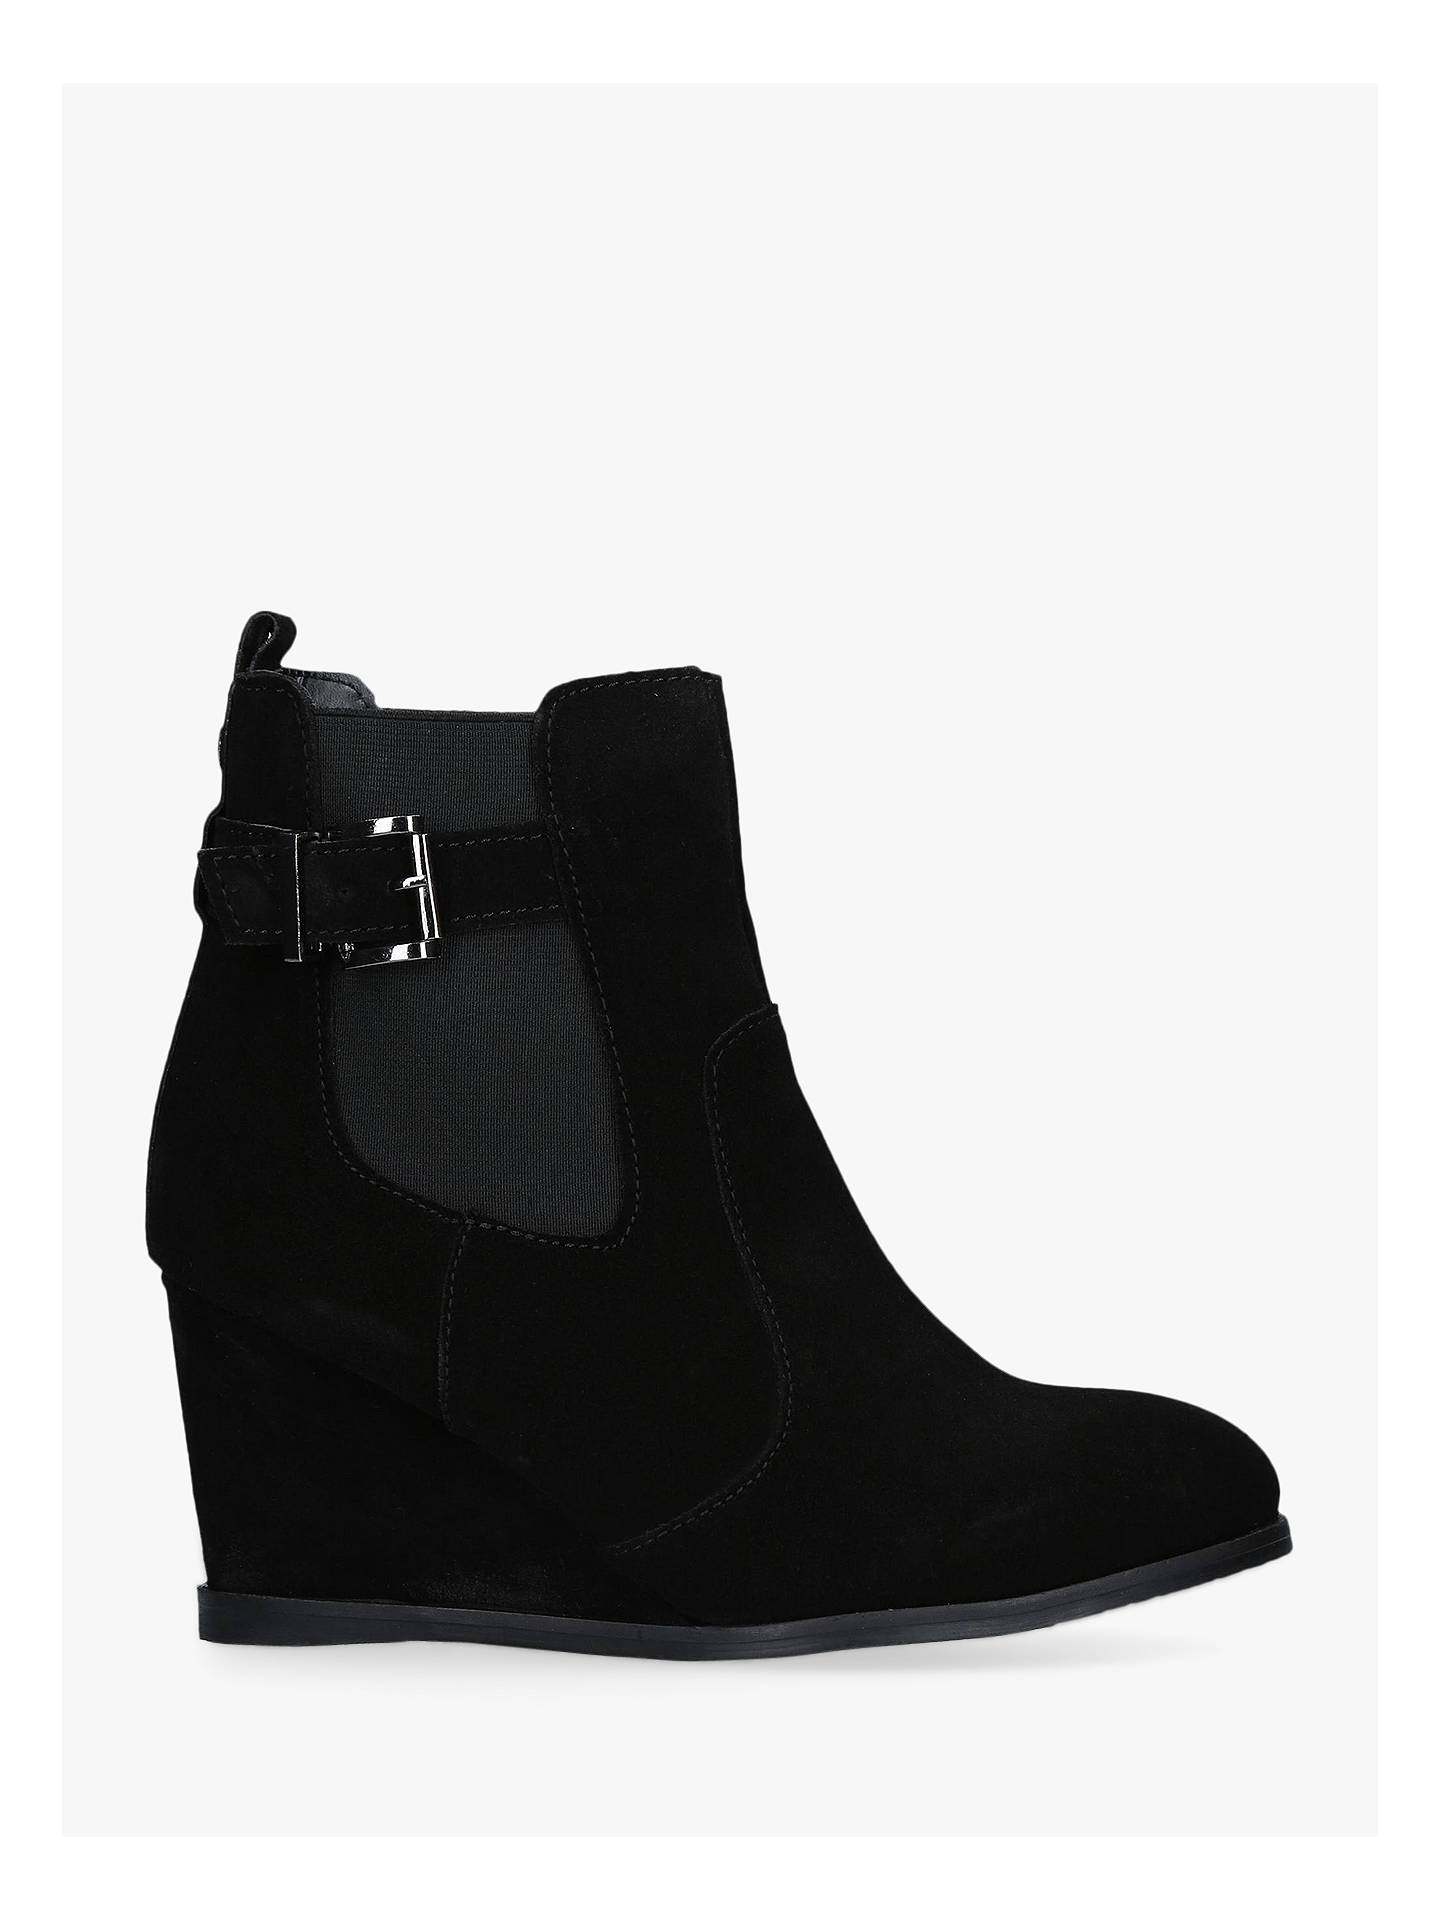 fa2b7dab26691 Carvela Sledge Wedge Ankle Boots, Black Suede at John Lewis & Partners